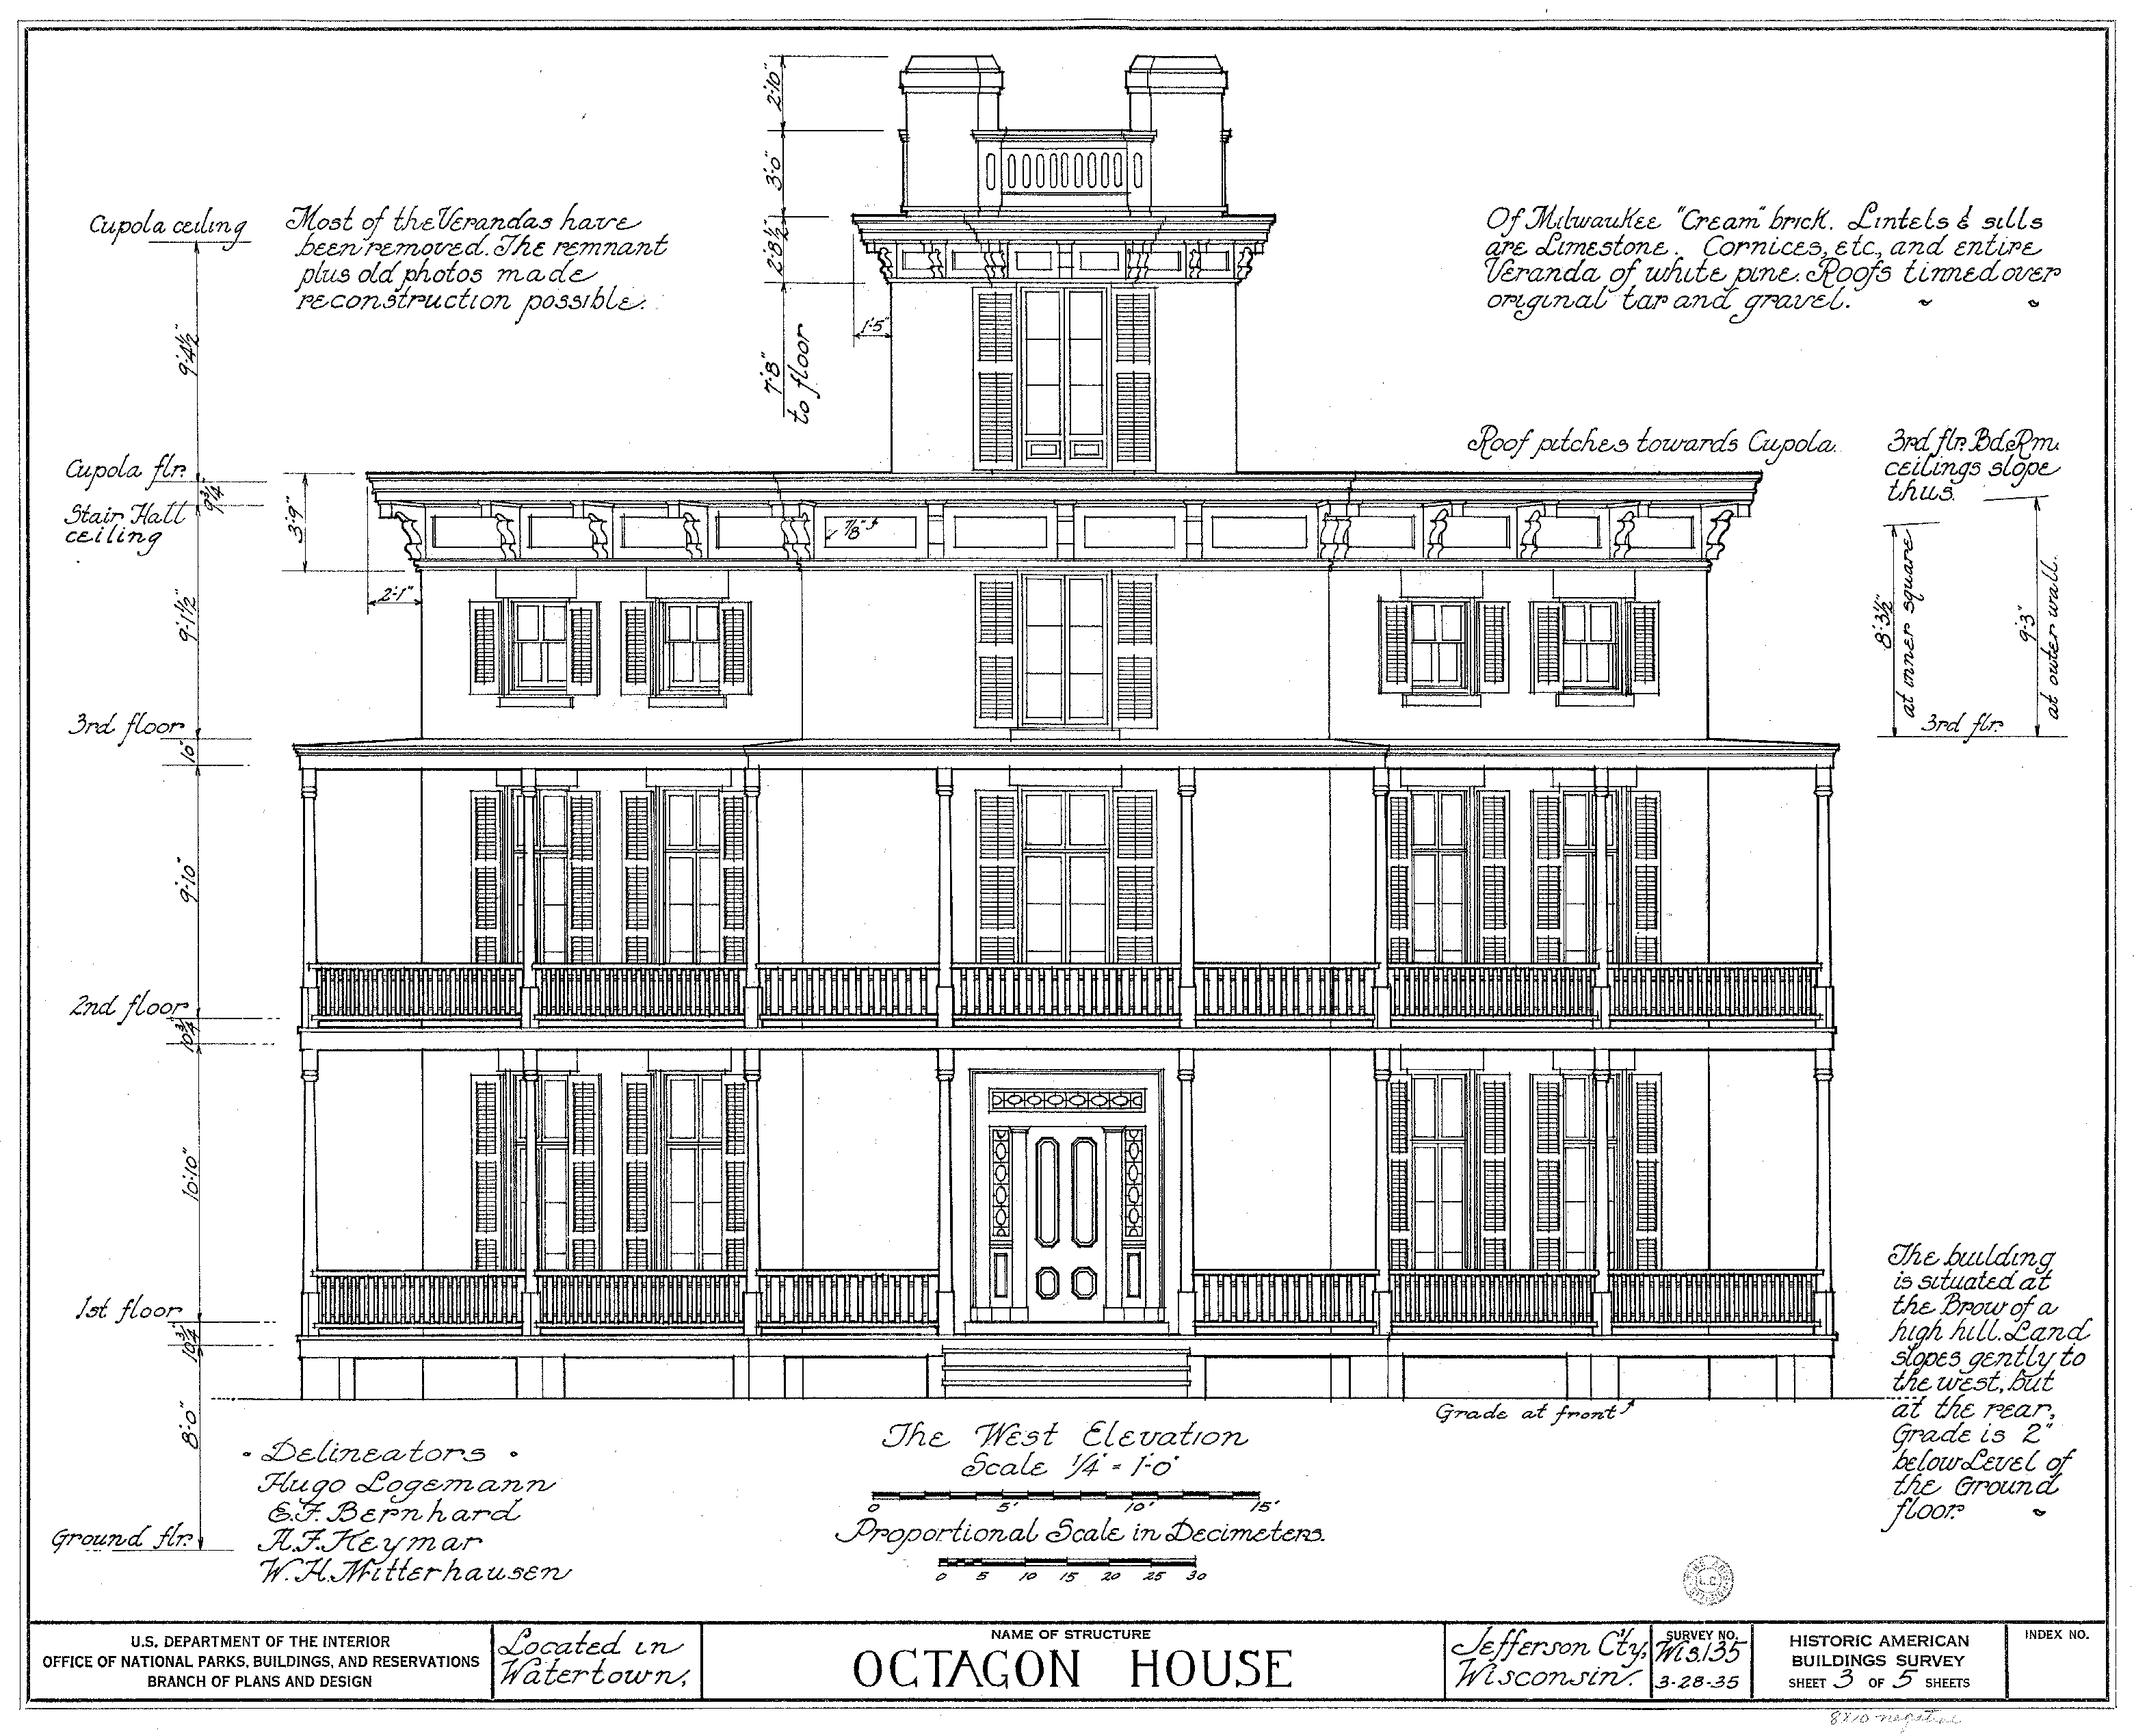 Outstanding Drawing House Plan Elevations 3120 x 2538 · 155 kB · png